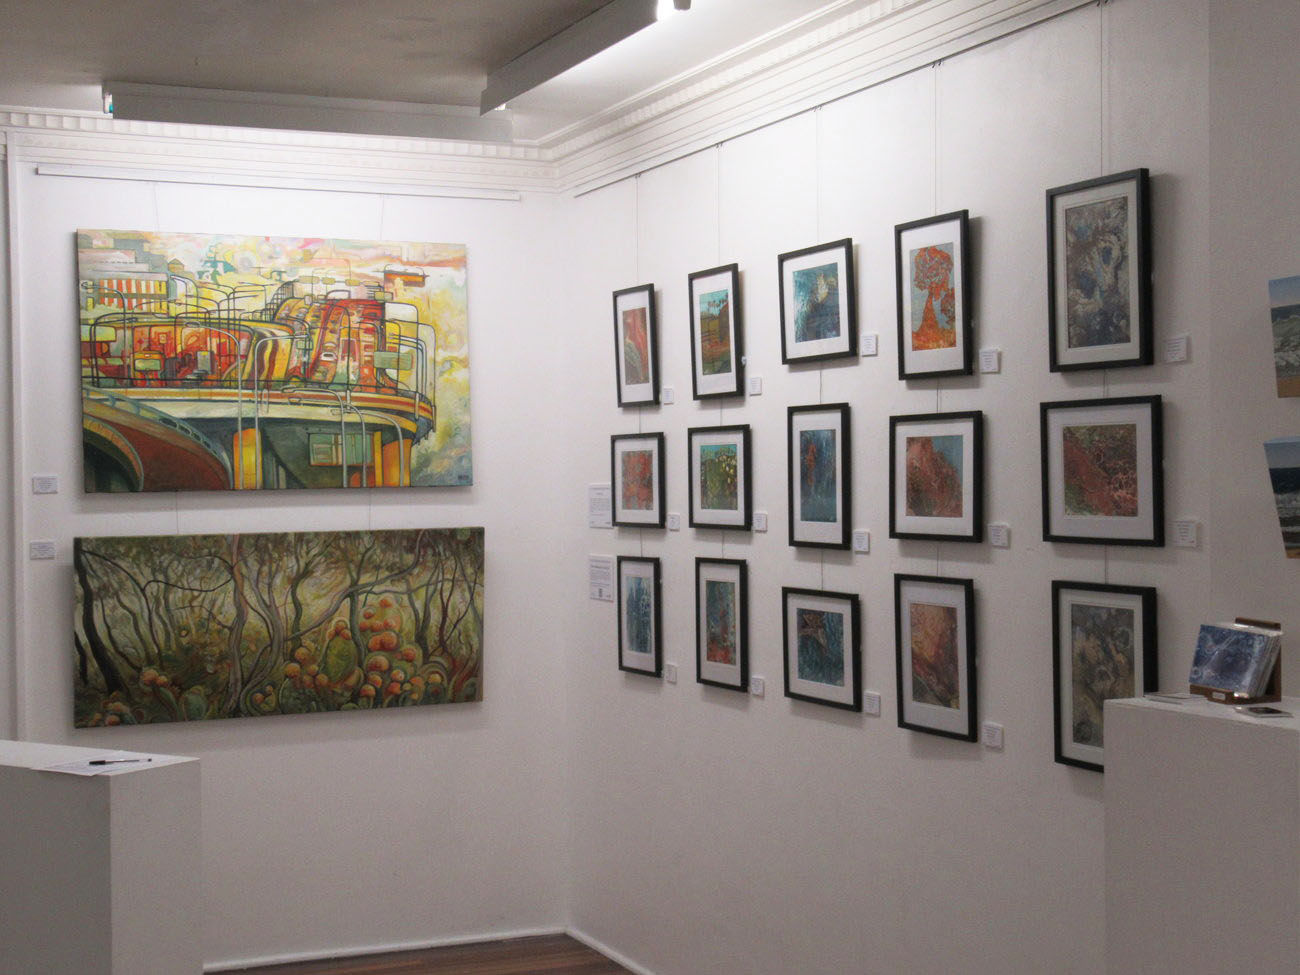 Gallery exhibition